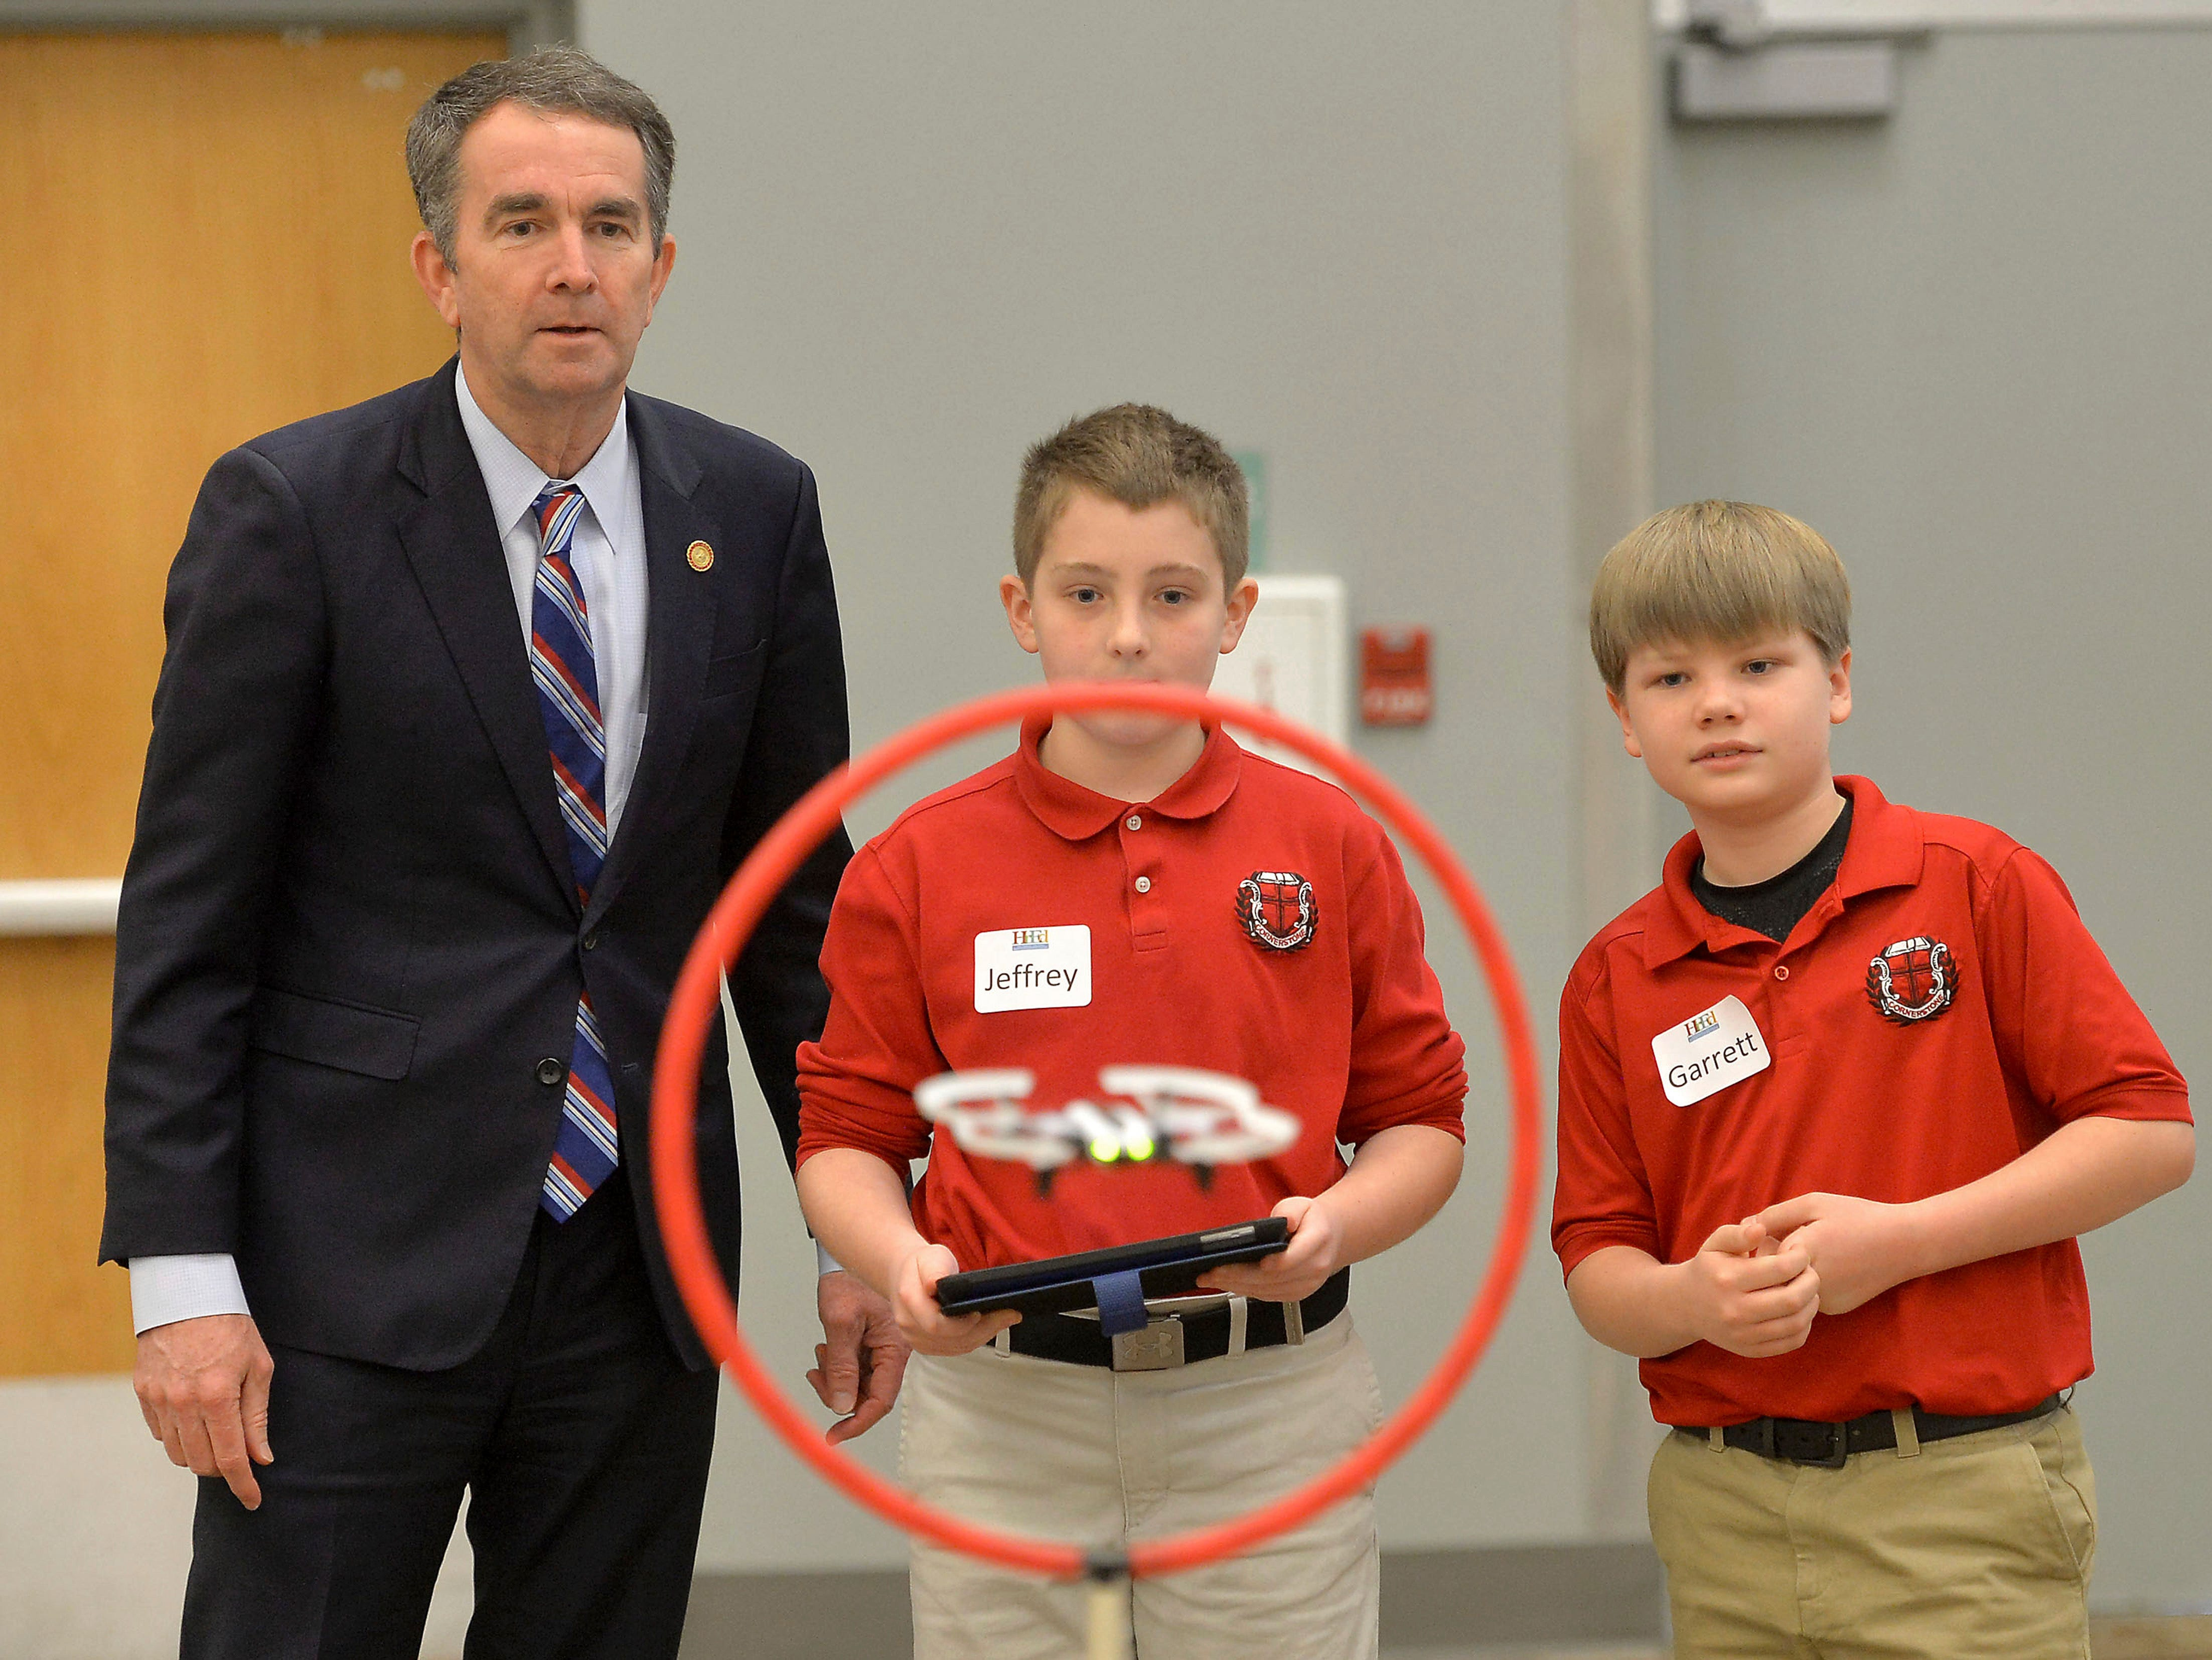 Virginia Governor Ralph Northam watches as Cornerstone Academy 5th graders Jeffery Taylor and Garrett Wakefield fly a programmed drone through a demonstration course at the Southwest Virginia Higher Education Center on Tuesday, Jan. 22, 2019, in Abingdon, Va. Northam was in Abingdon promoting Virginia Computer Science Education Week.